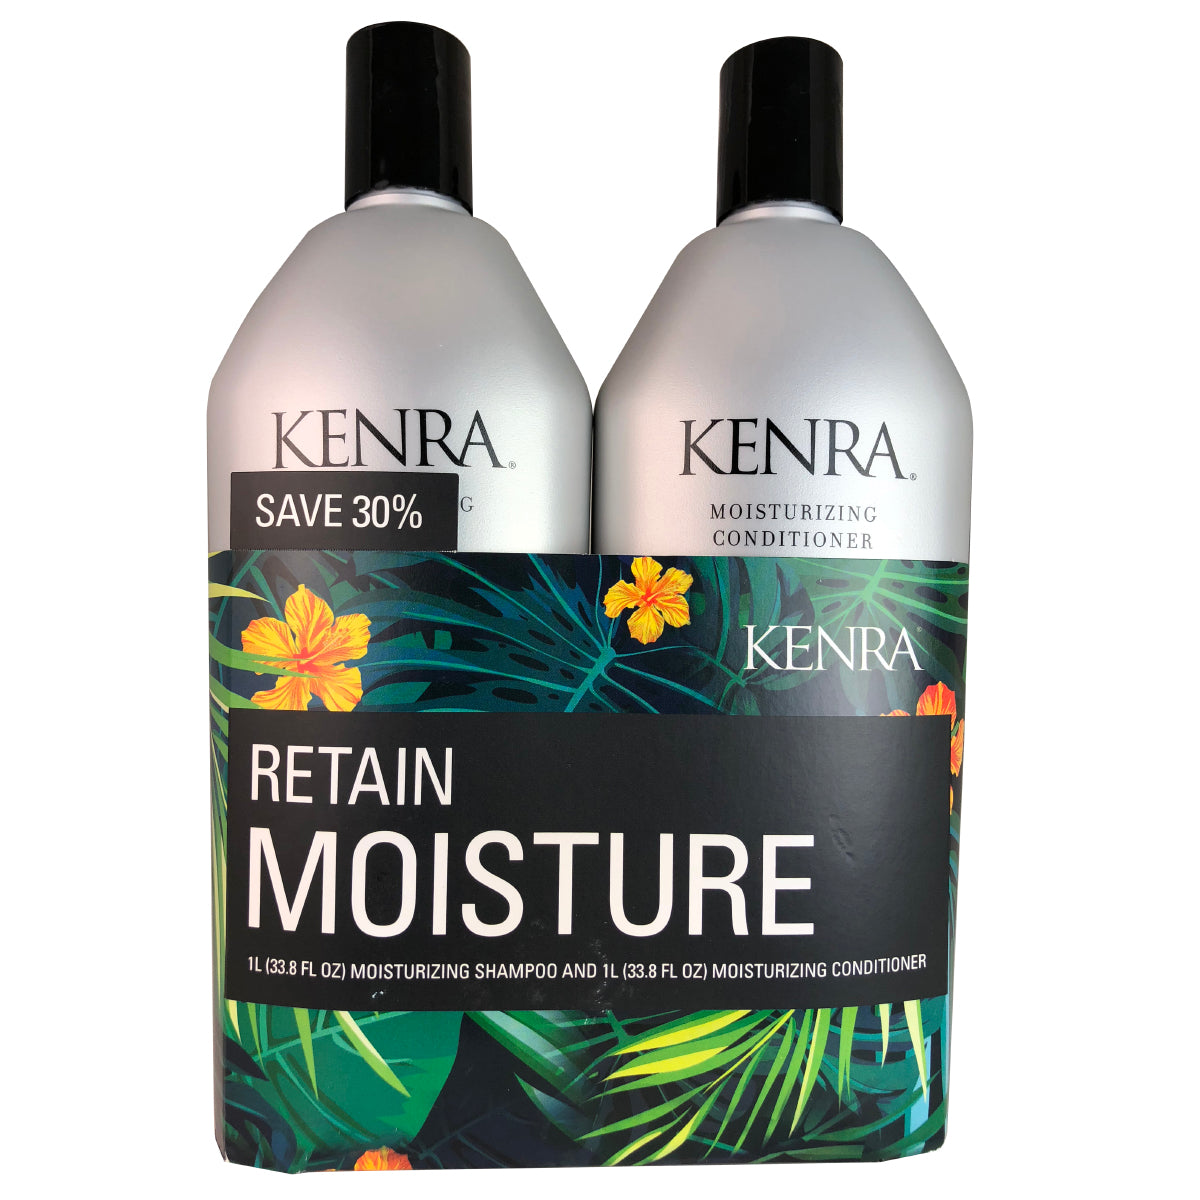 Kenra Moisturizing Hair Shampoo And Conditioner Duo 33.8 oz Each